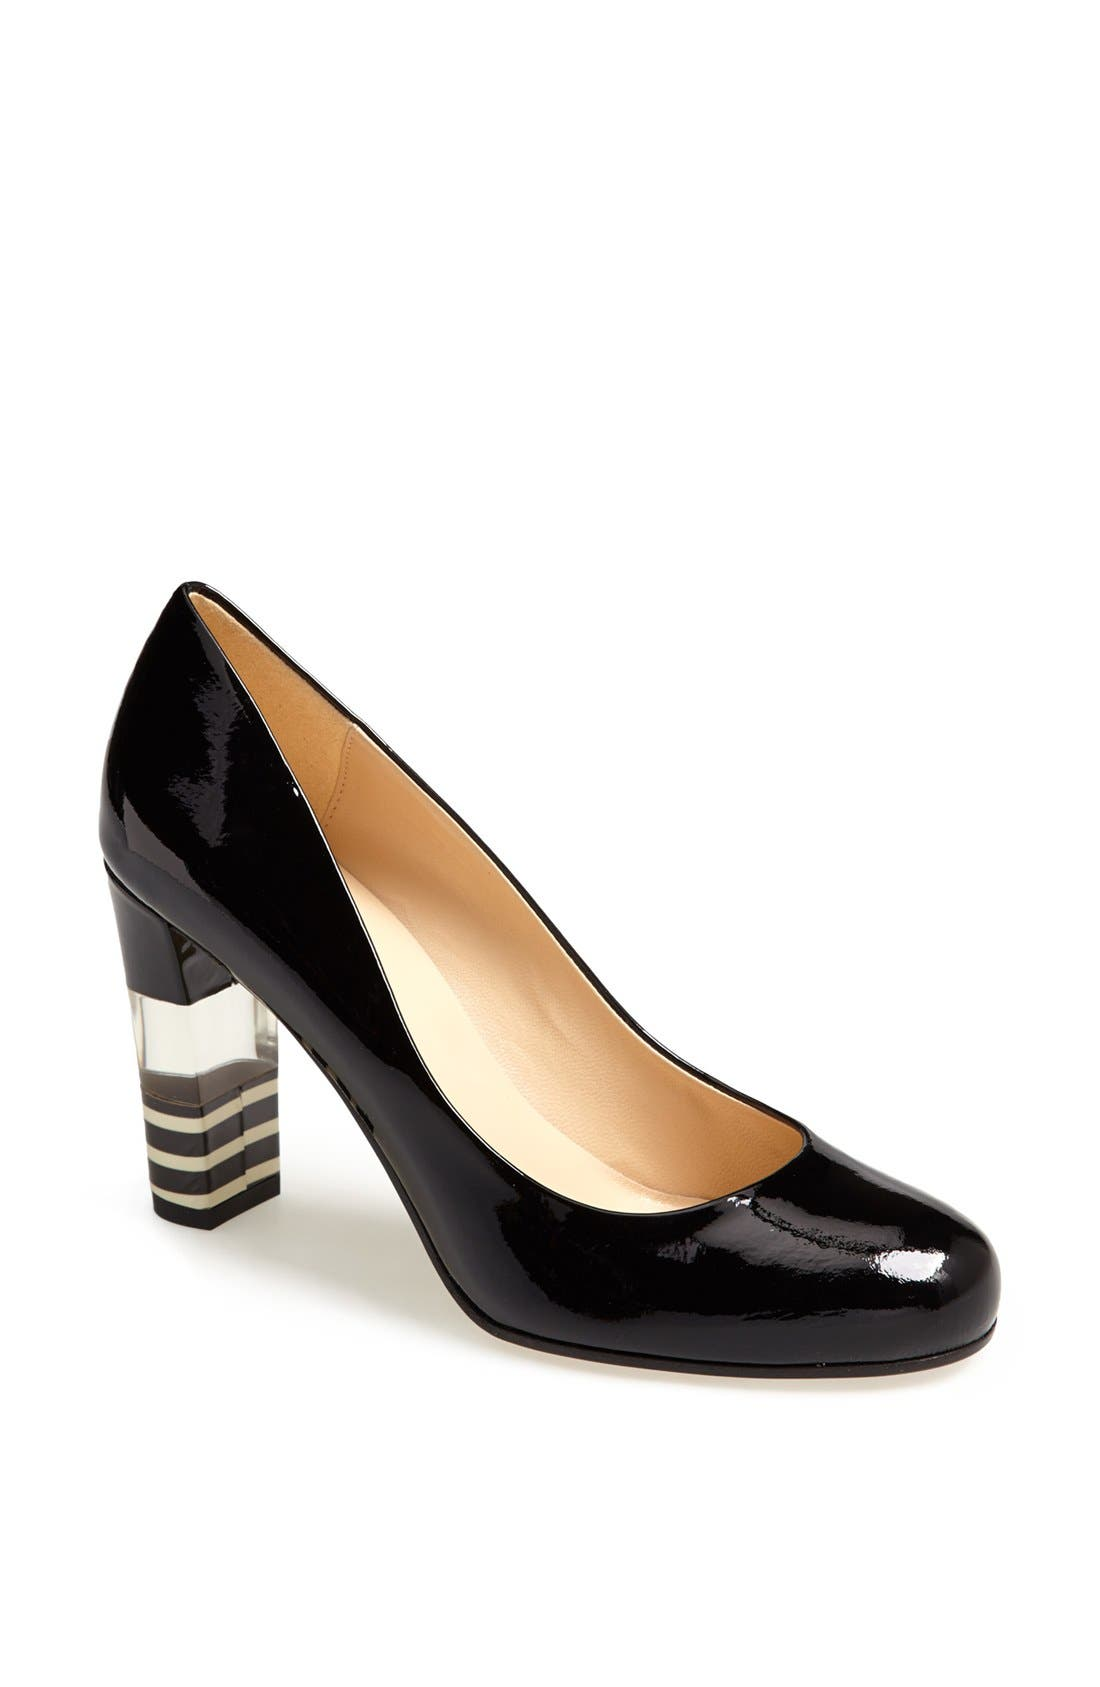 Alternate Image 1 Selected - kate spade new york 'leslie' leather pump